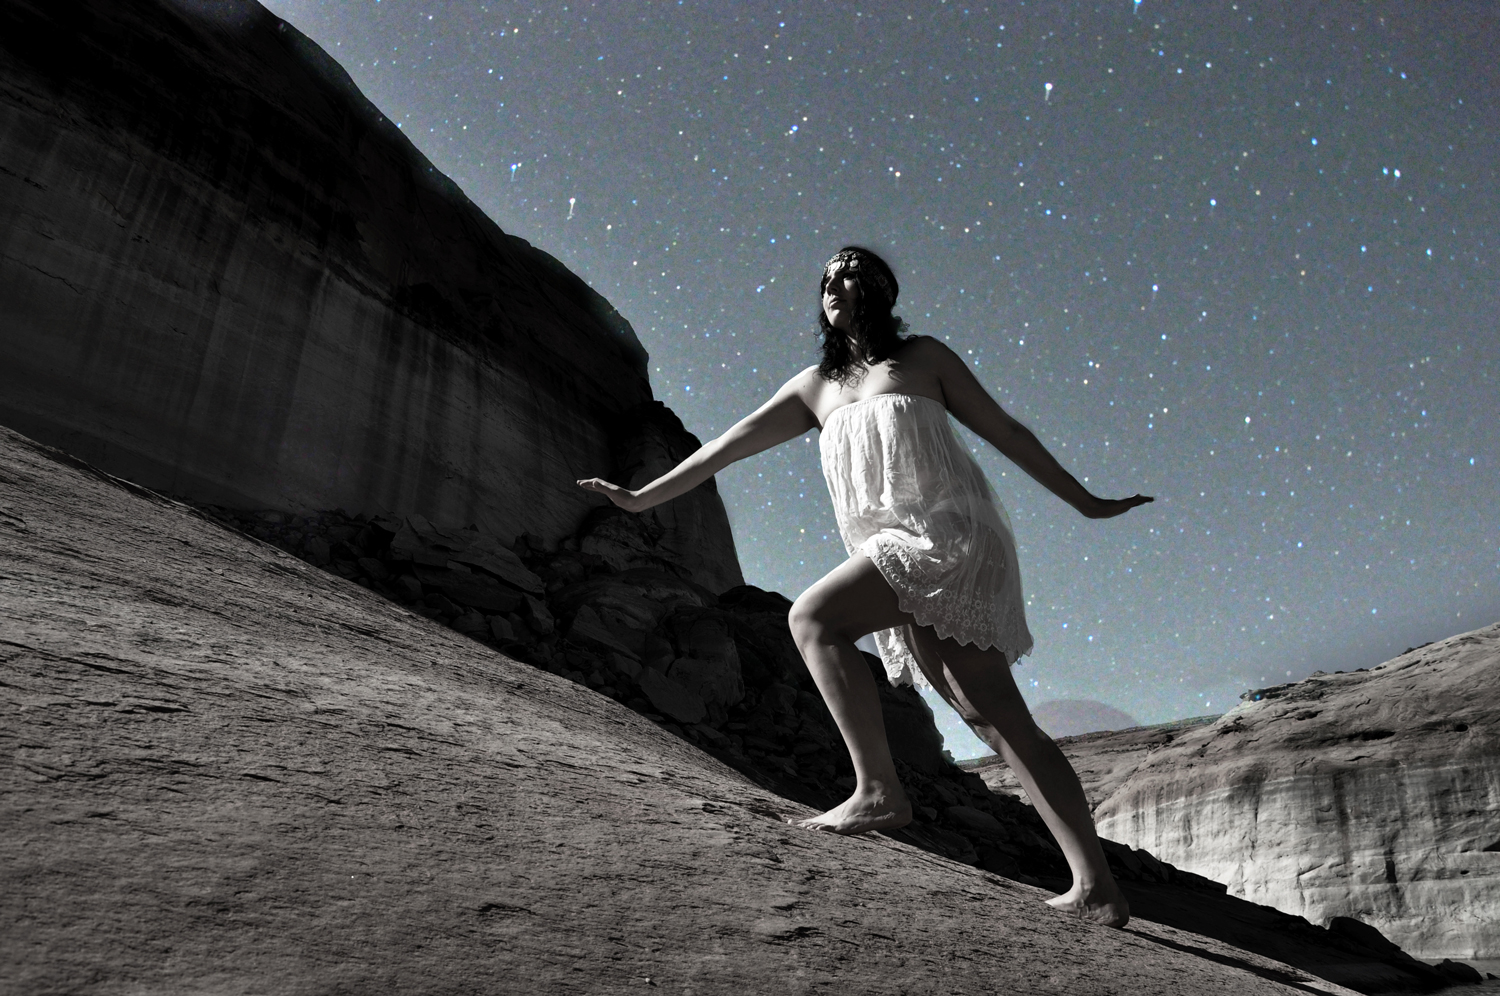 Walking-On-Mars-Desert-Stars_Carly-Carpenter.jpg